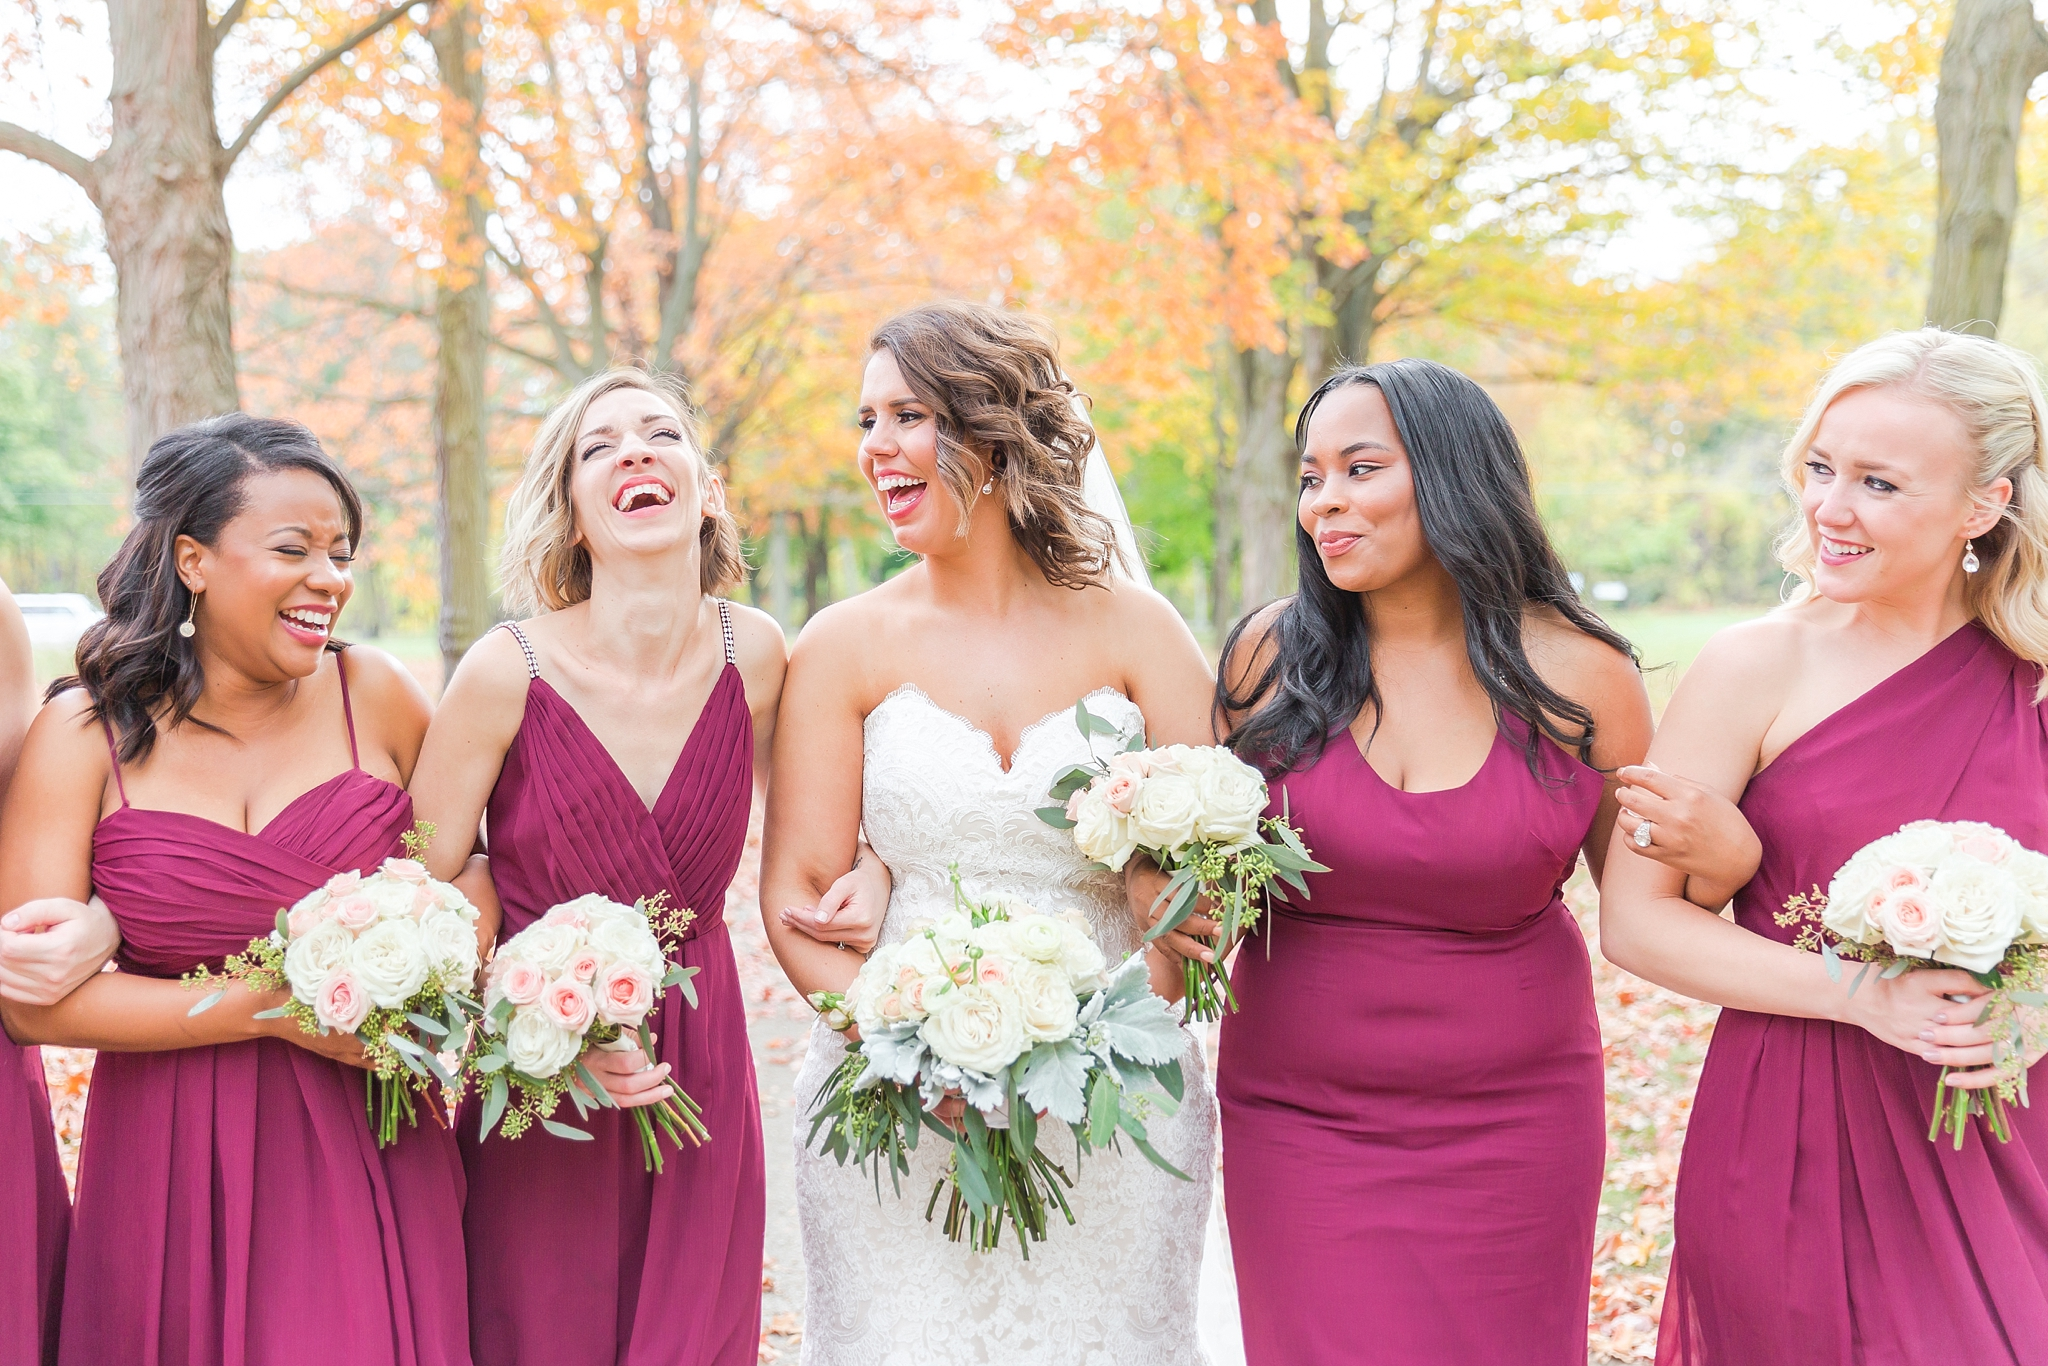 romantic-artful-candid-wedding-photos-in-detroit-lansing-ann-arbor-northern-michigan-and-chicago-by-courtney-carolyn-photography_0058.jpg